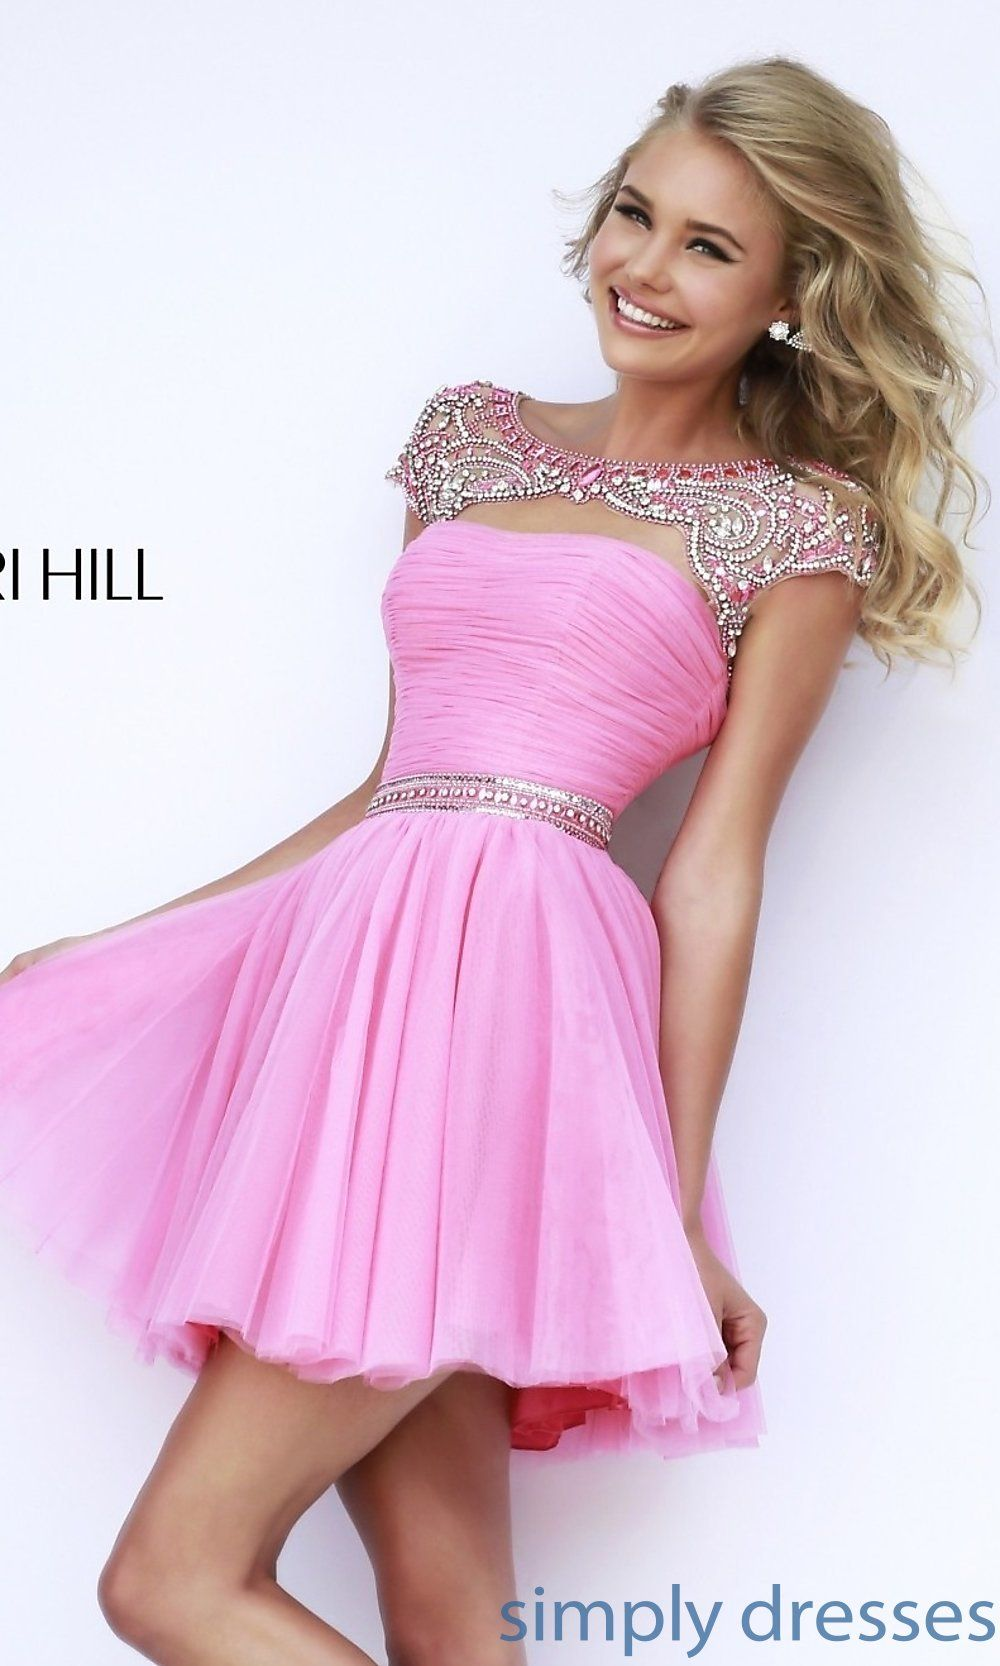 Homecoming Dresses, Formal Prom Dresses, Evening Wear: SH-11191 ...